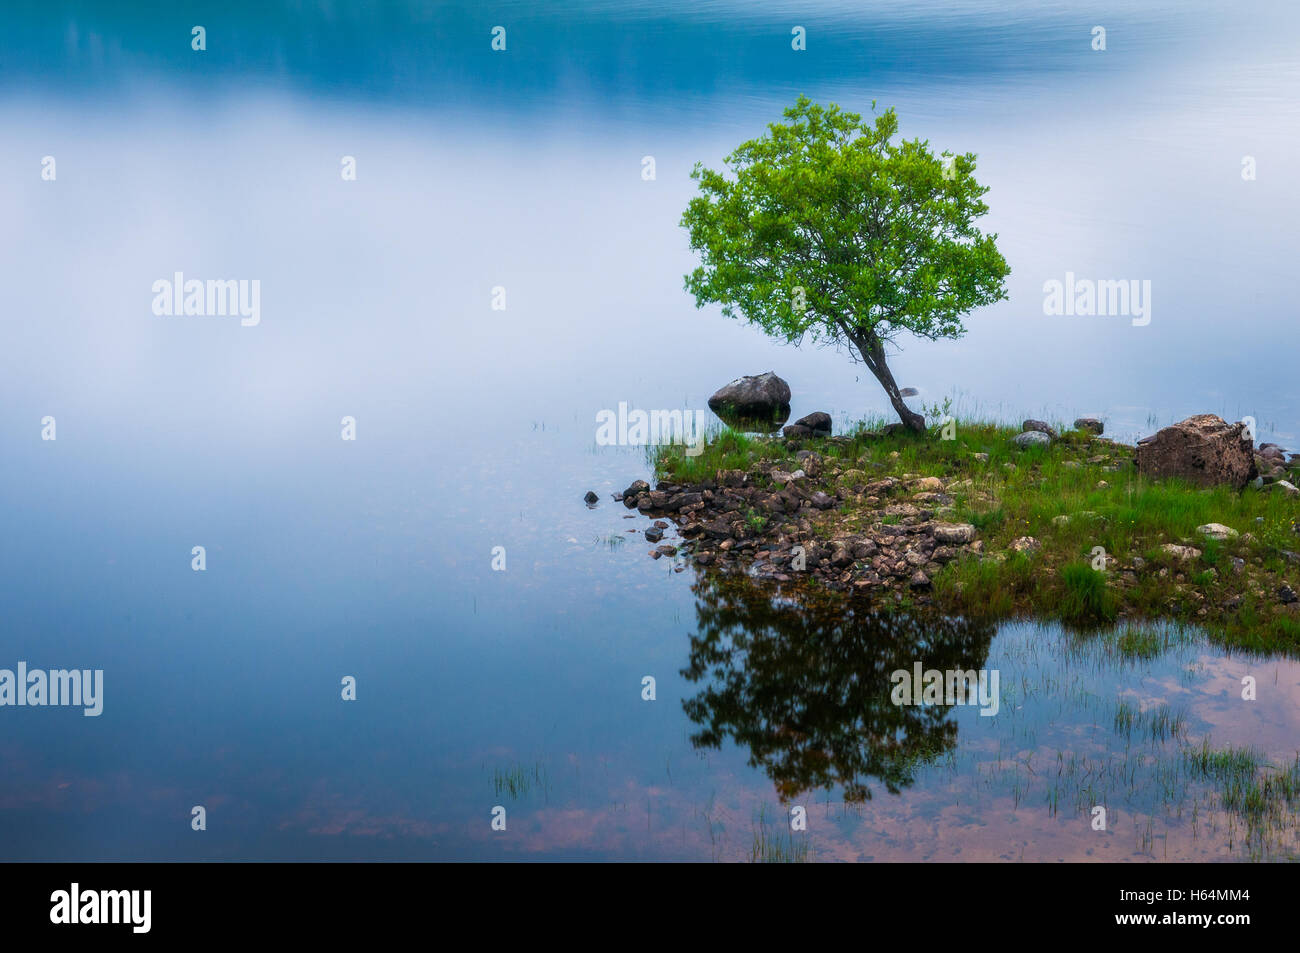 Tree in Dunlewey lough, Donegal, Ireland - Stock Image